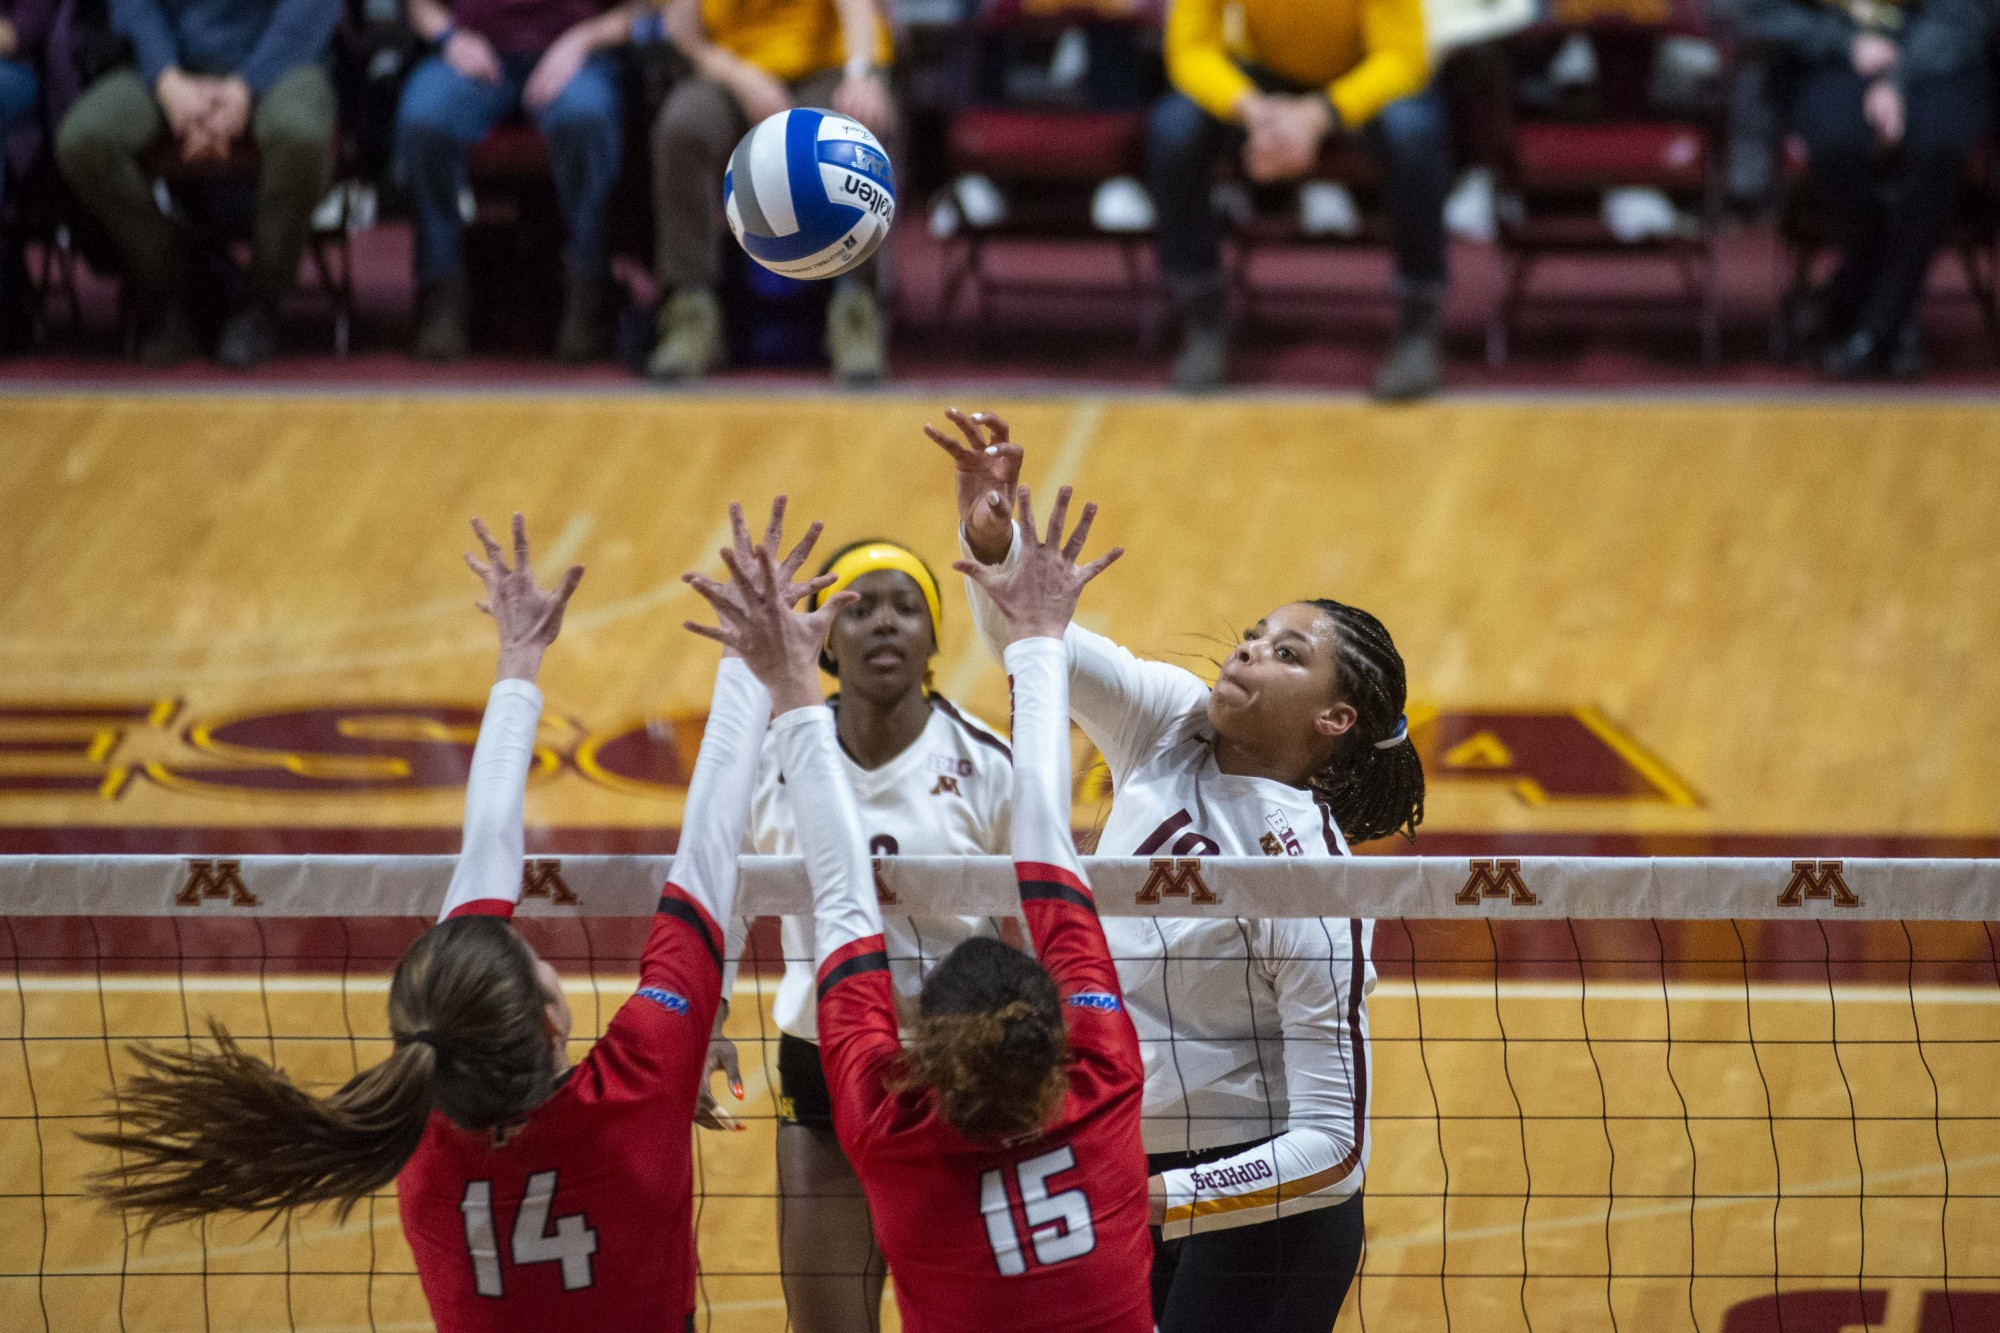 Outside hitter Alexis Hart pushes the ball over the net during the game against the Fairfield Stags in the first round of the NCAA tournament at the Maturi Pavilion on Friday, Dec. 6.